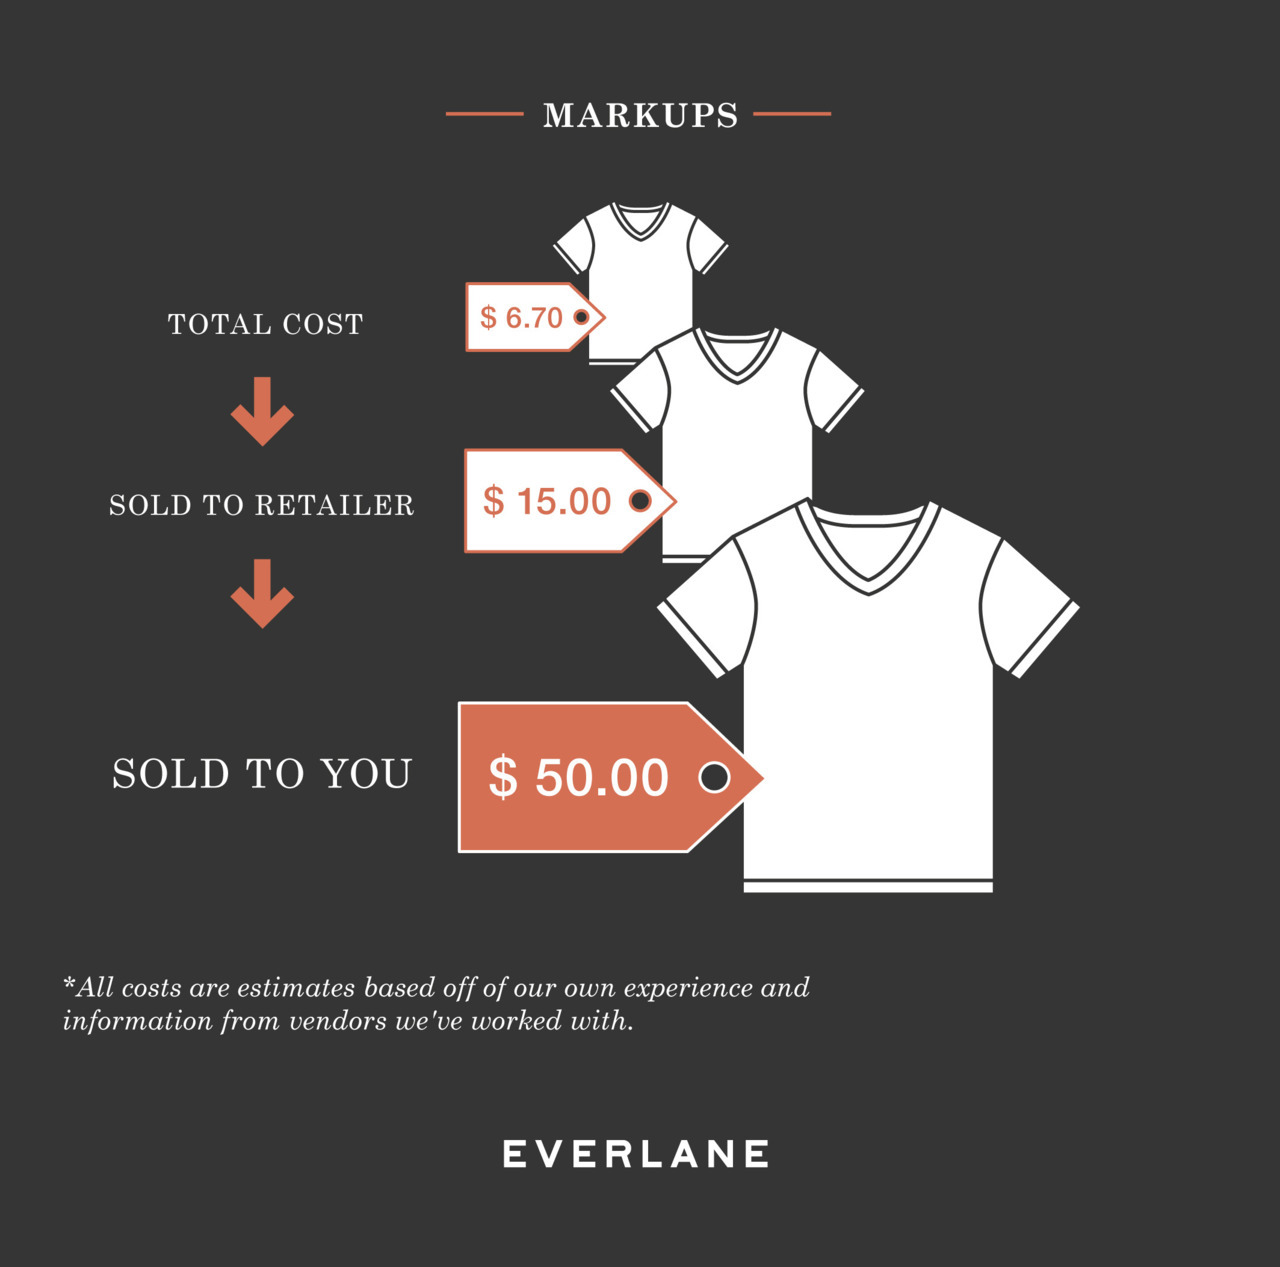 everlane:  Oh my, it looks like we've stirred some controversy with our recent Making Of A Designer T-shirt infographic. At Well Spent, there's an interesting debate underway among a group of respected retailers. This graphic was never intended as an attack on retailers (we love beautiful stores too), but an illustration of the costs behind making our T-shirts and how — when you're online only — you can cut the markup expense associated with having locations.  For those interested: Our T-shirts are cut, sewn, and dyed in Los Angeles, and the infographic reflects those made-in-LA numbers. We would have loved to weigh in, and are always happy to answer questions.